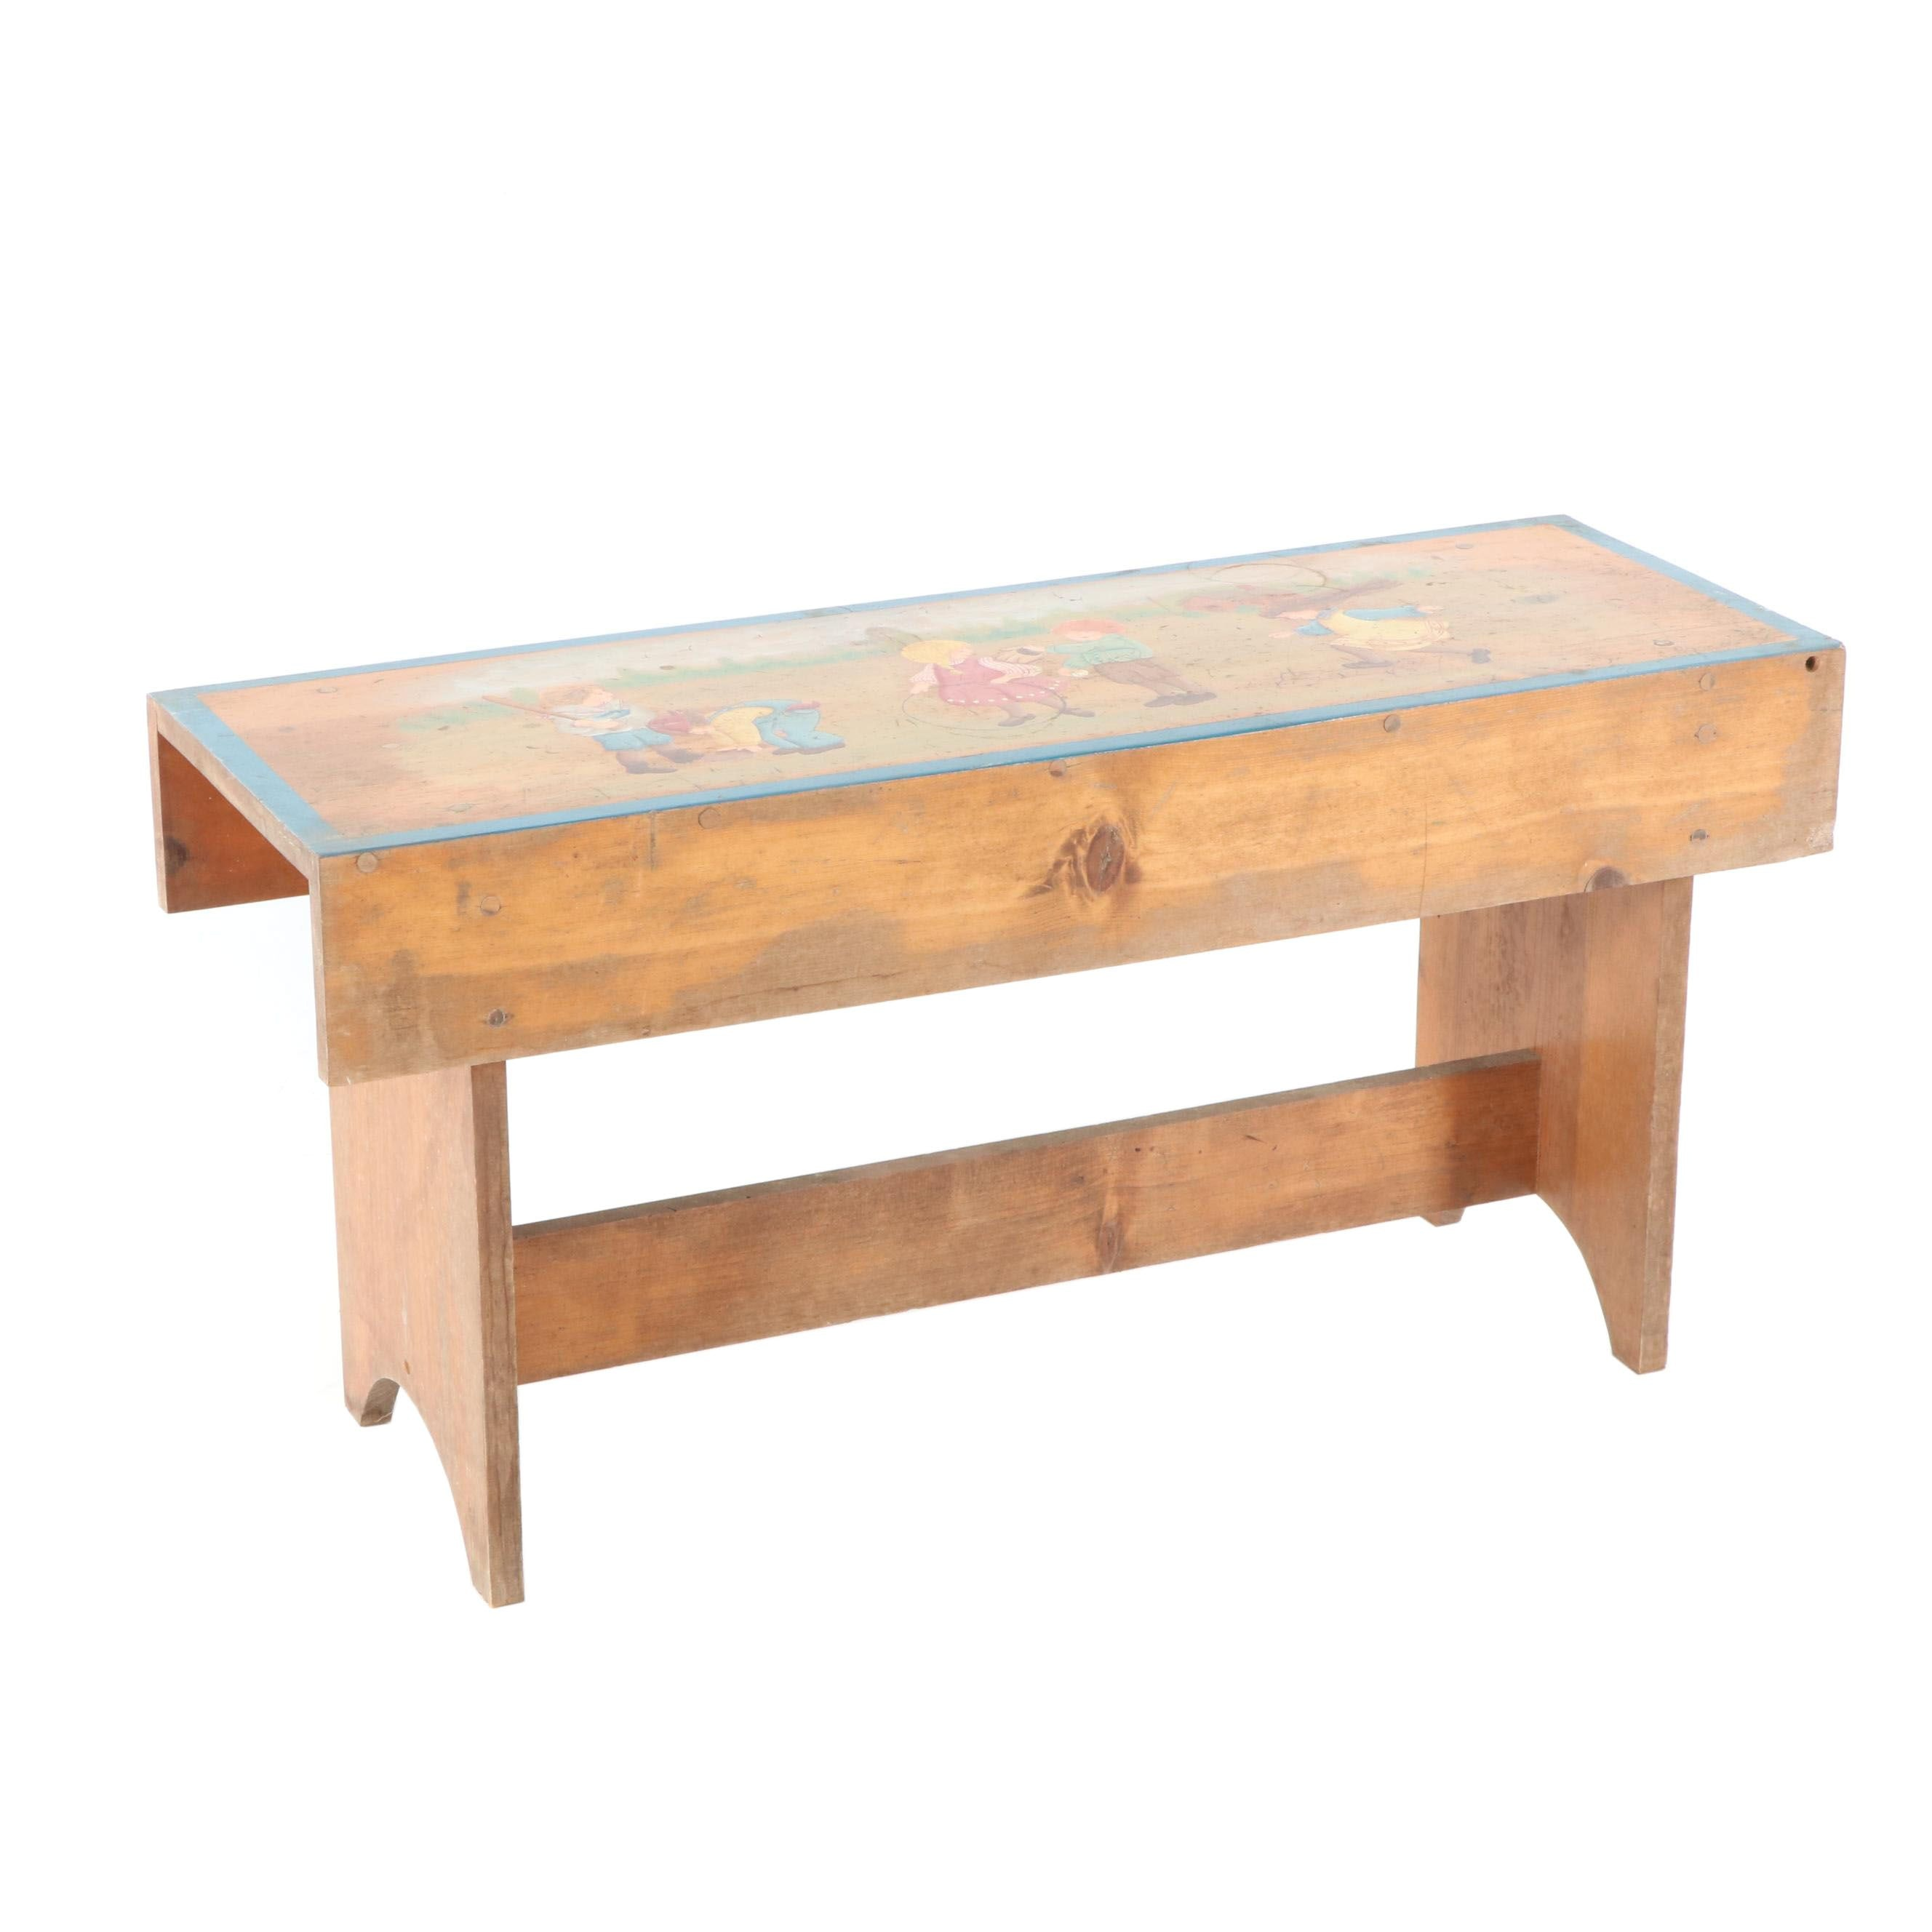 Pine Children's Bench with Painted Motif, Late 20th Century